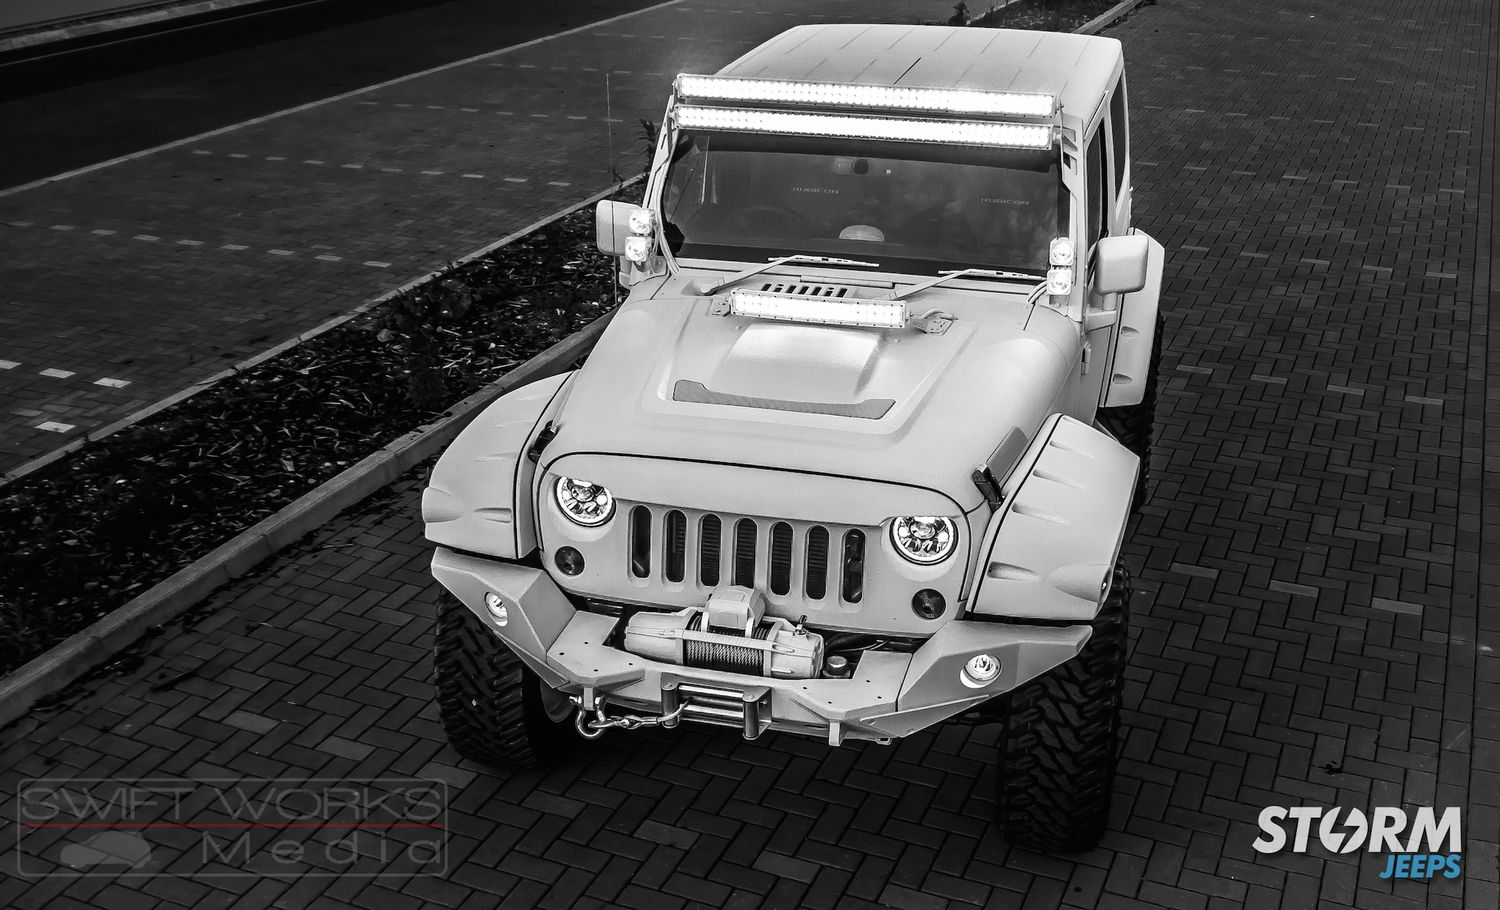 Storm 11 2015 Jeep Wrangler Rubicon 2 Door 3 6l V6